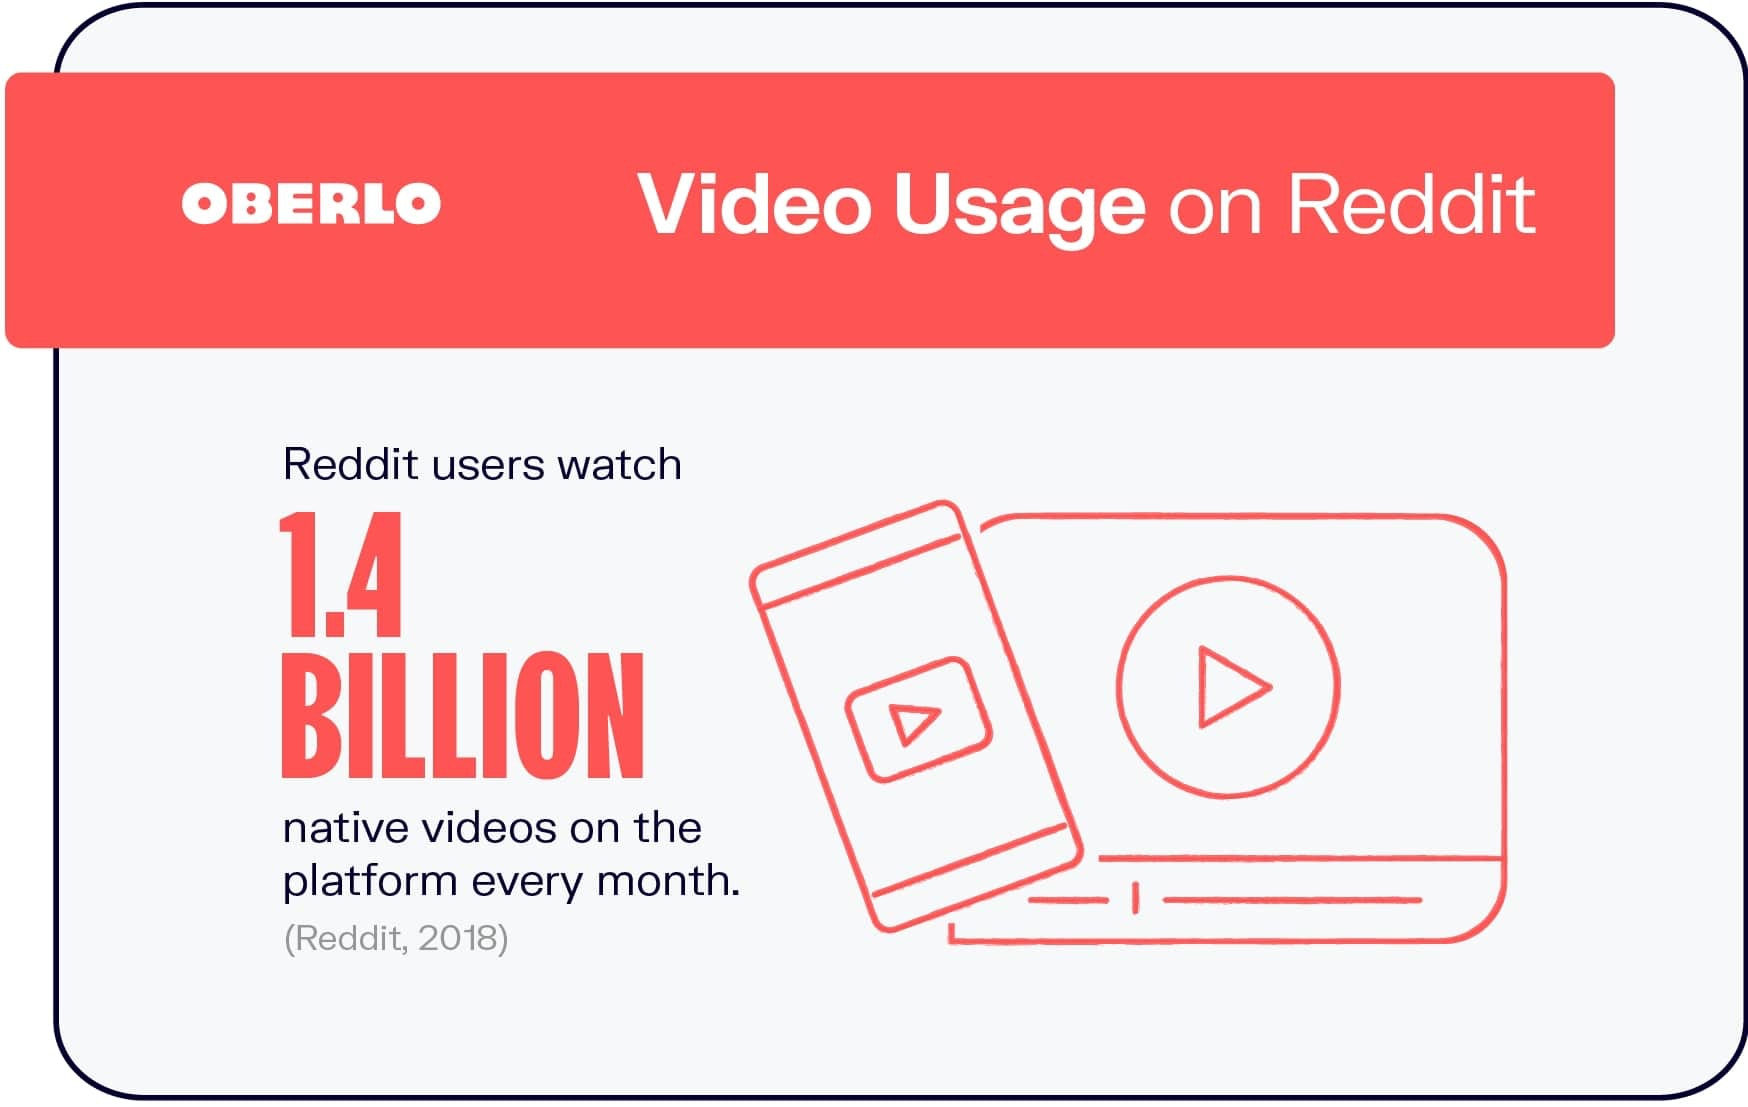 Video Usage on Reddit